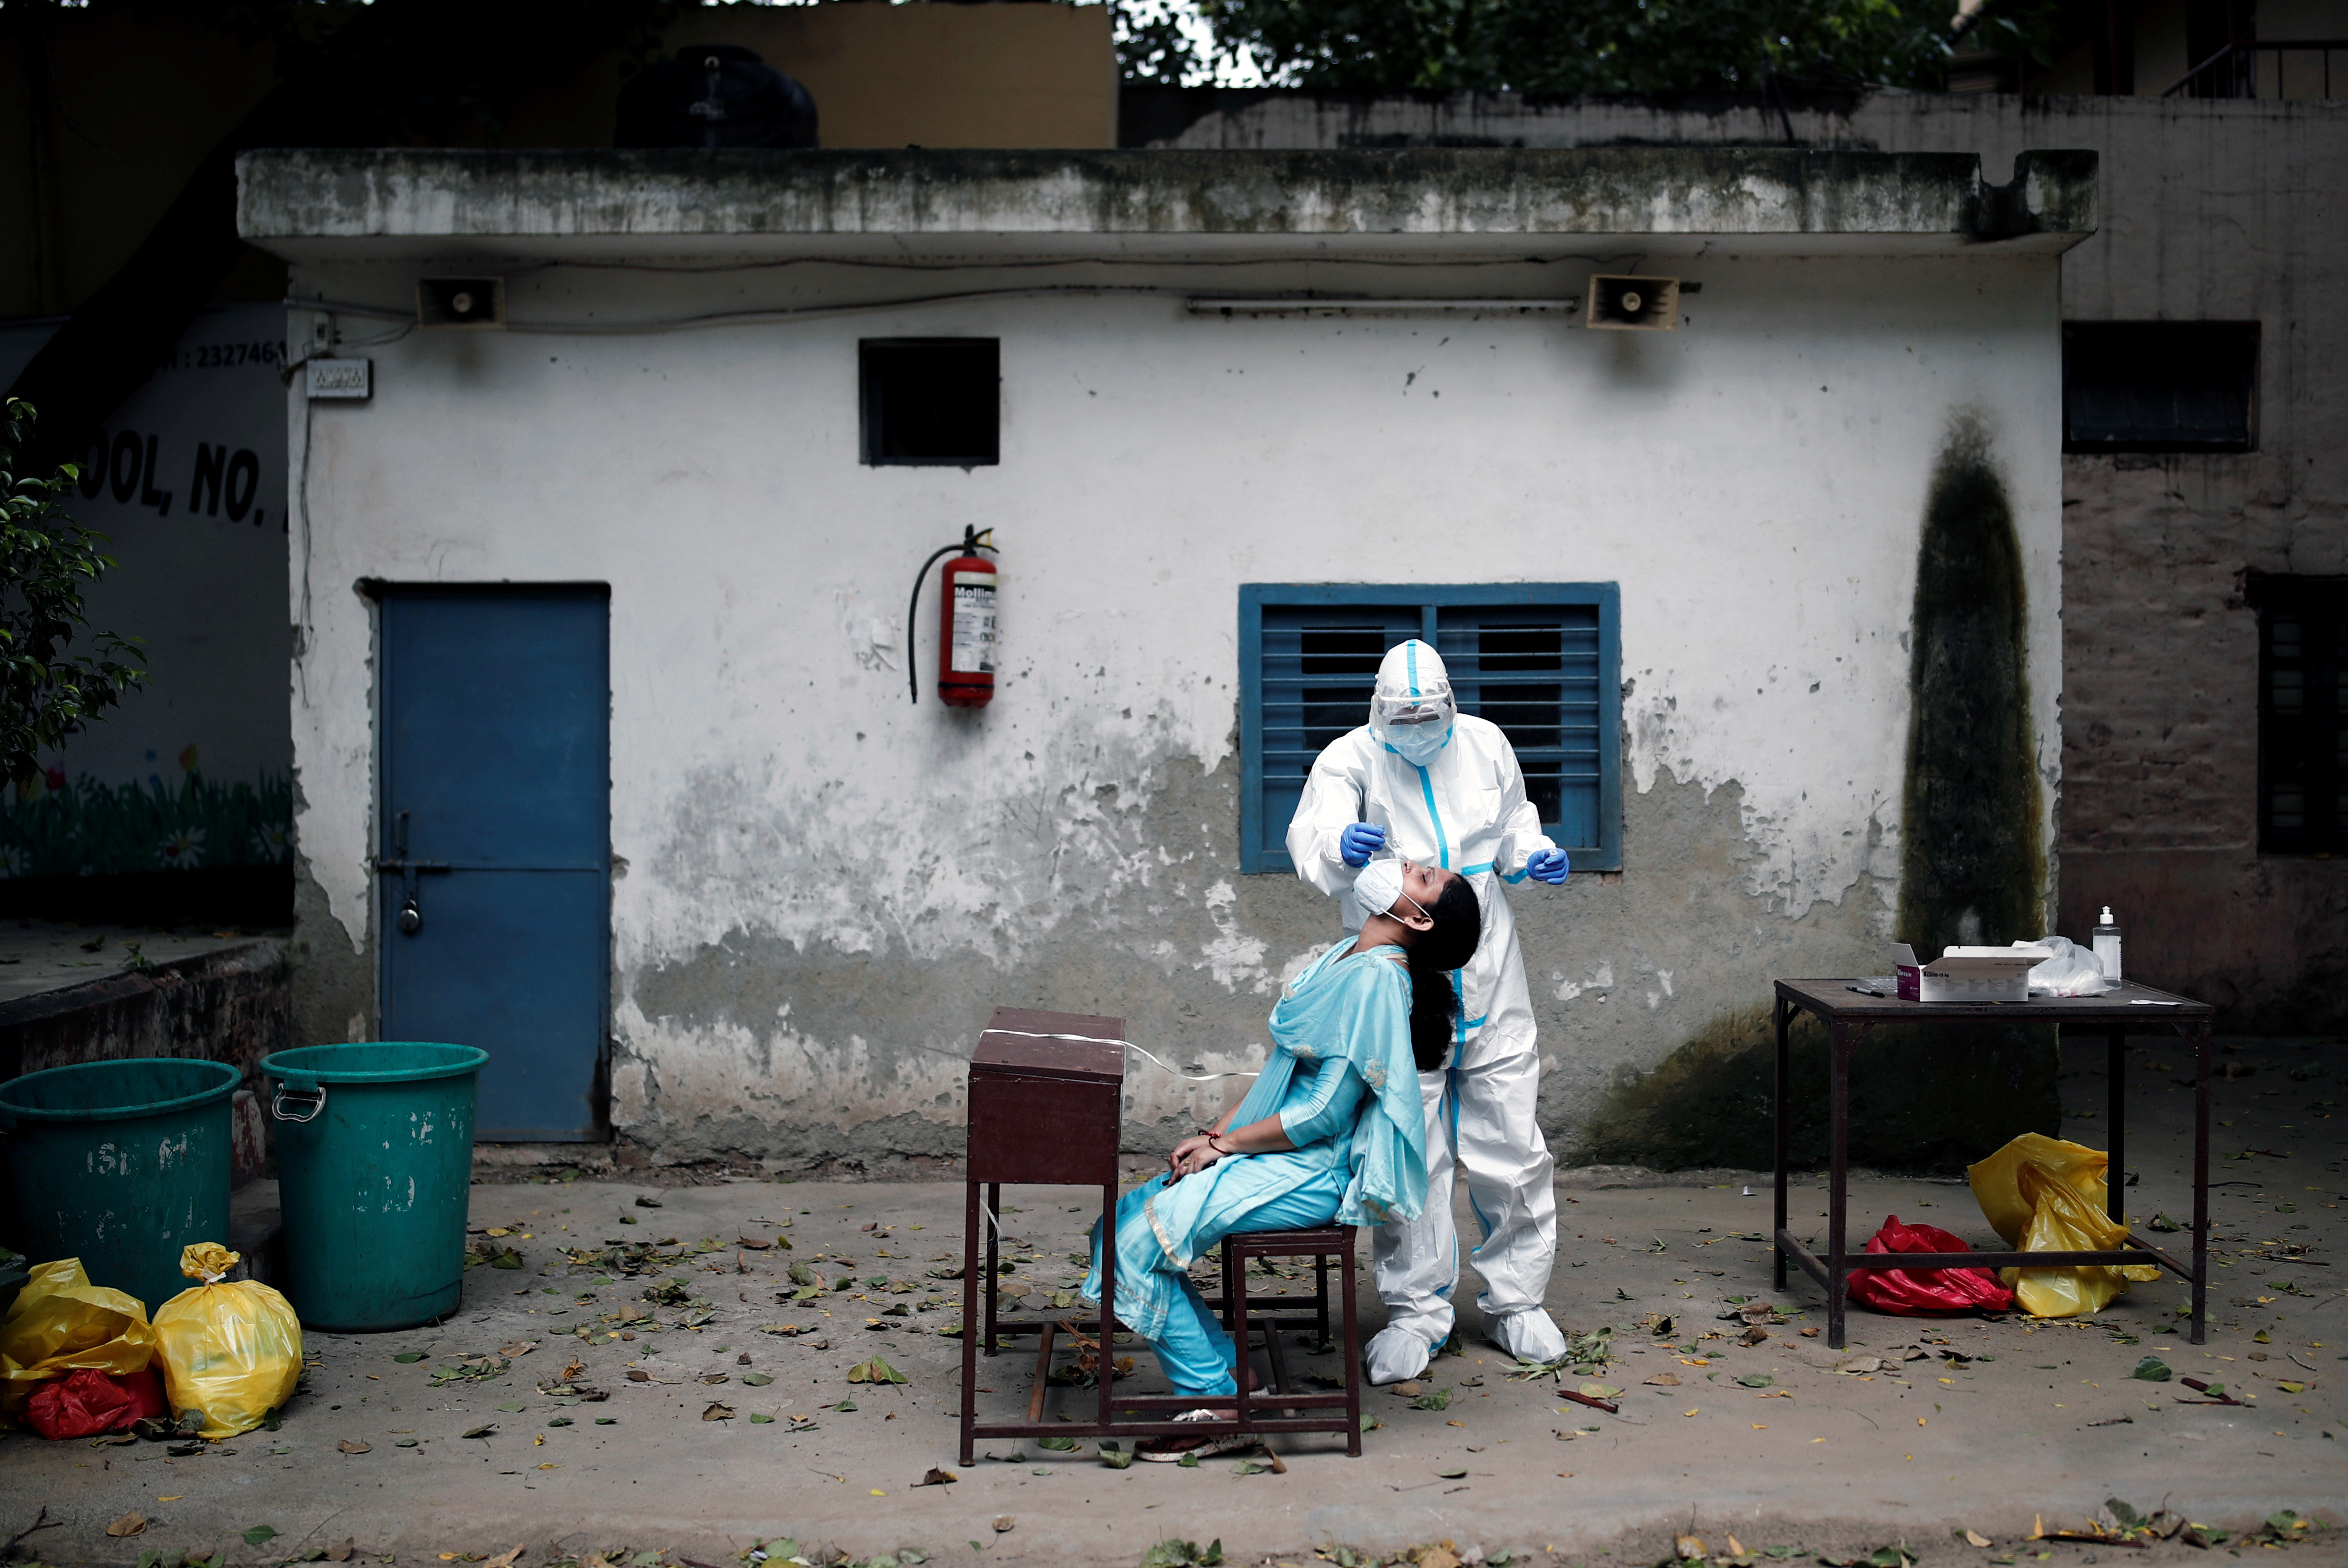 A health worker in personal protective equipment (PPE) collects a sample using a swab from a person at a school which was turned into a centre to conduct tests for the coronavirus disease (COVID-19), amidst the spread of the disease, in New Delhi, India, August 6, 2020. REUTERS/Adnan Abidi - RC2A8I9FMIBR